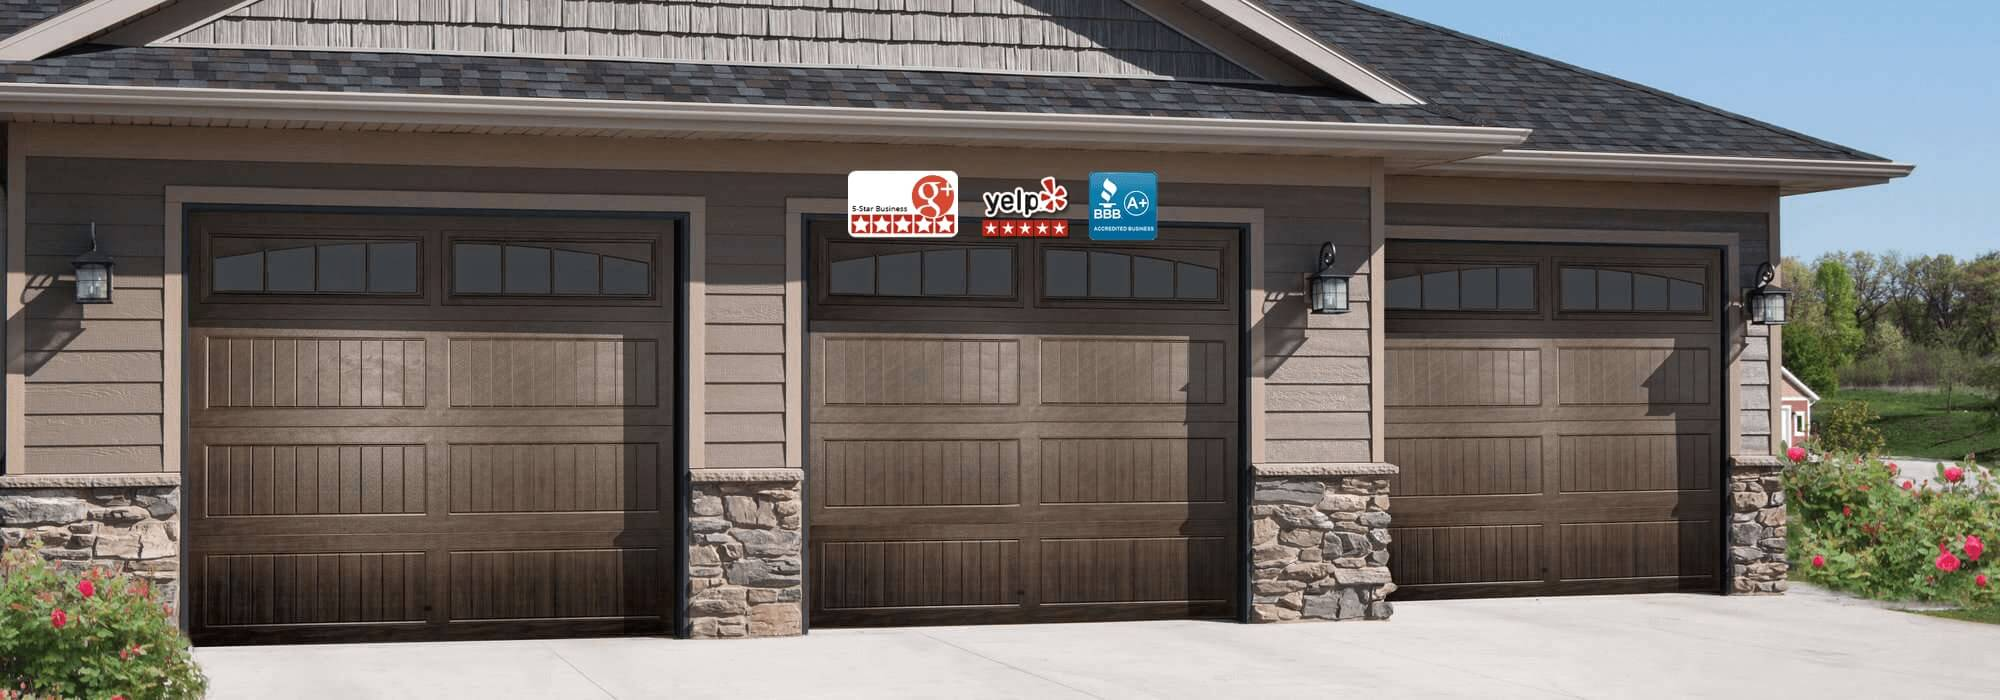 Garage Door Repair Denver Co Repair And Service For. Door Signs. Closet Door Hinges. Double Sliding Closet Doors. Cabinets Without Doors. Green Kitchen Cabinet Doors. Wholesale Door Knobs. Surfboard Garage Storage. Outdoor Garage Light Fixtures